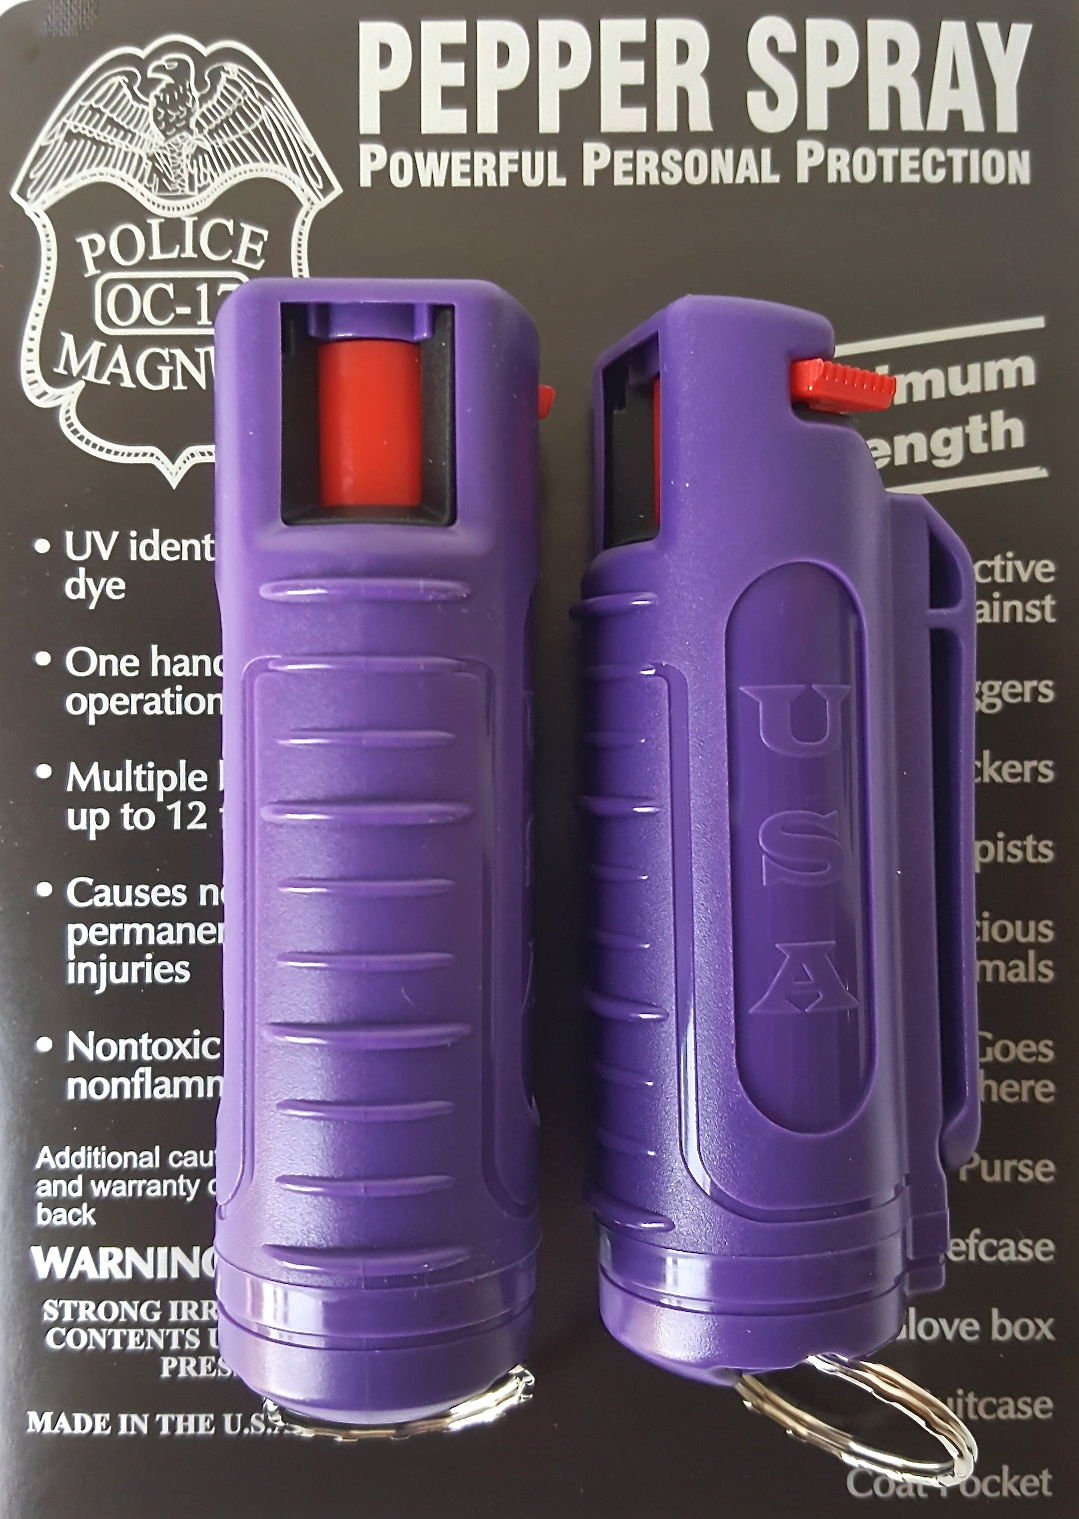 2 PACK POLICE MAGNUM MACE PEPPER SPRAY 1/2oz PURPLE INJECTION MOLDED KEYCHAIN by POLICE MAGNUM